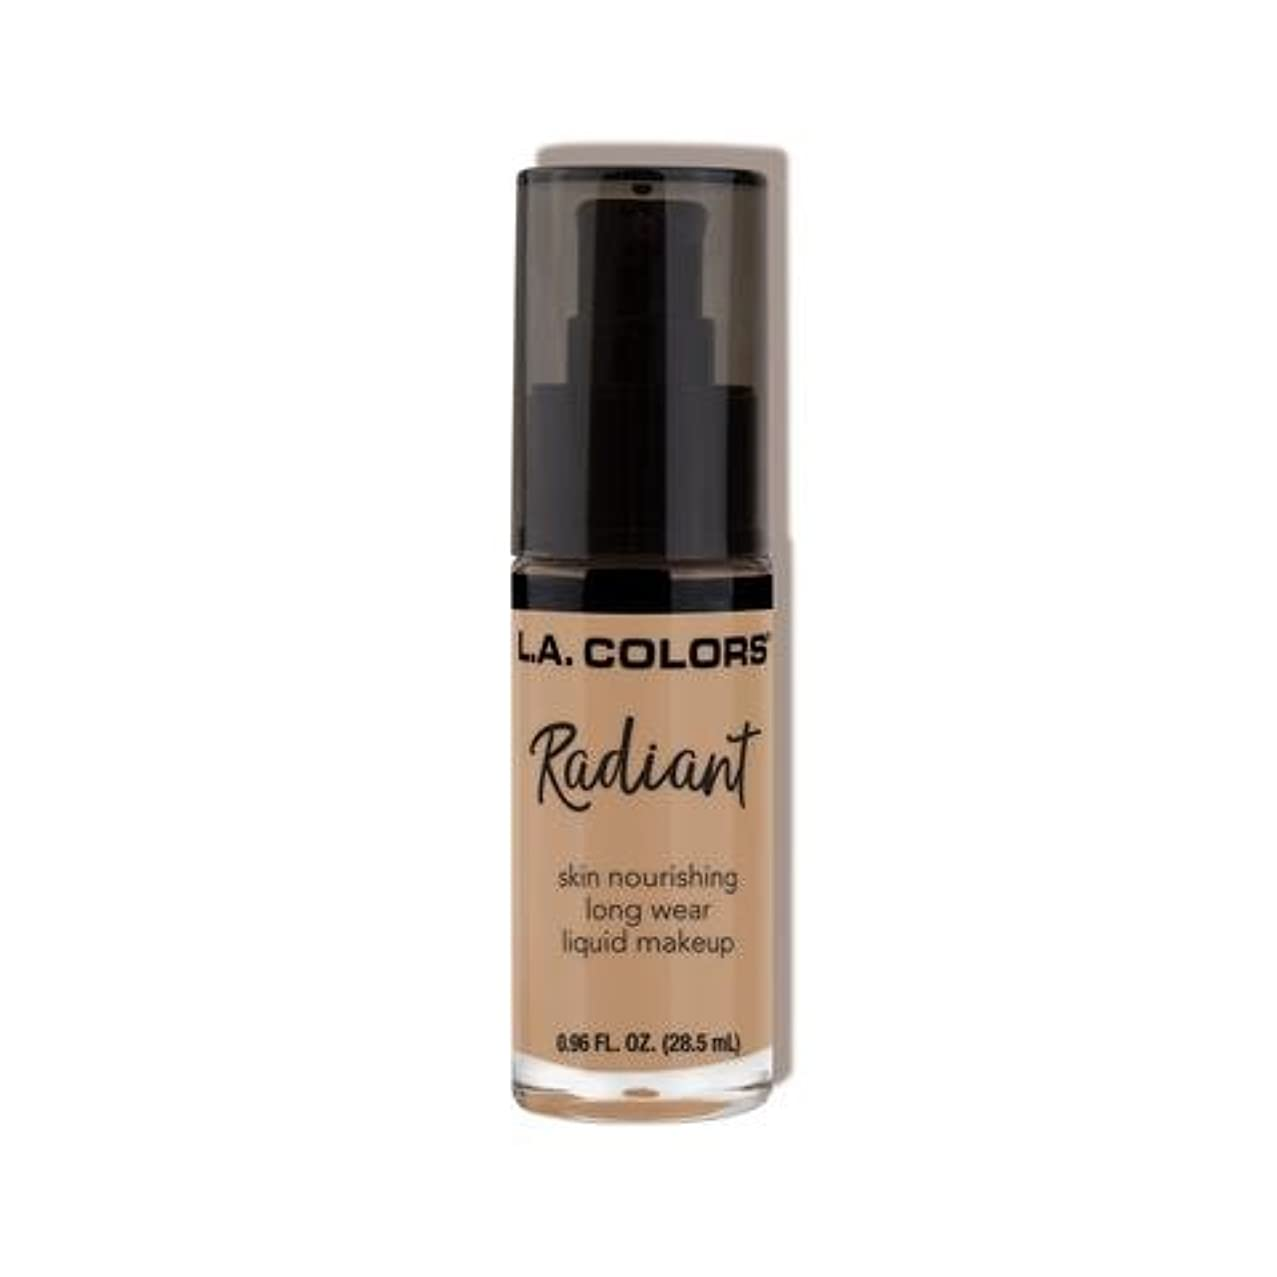 学部長反発する精度(3 Pack) L.A. COLORS Radiant Liquid Makeup - Medium Beige (並行輸入品)